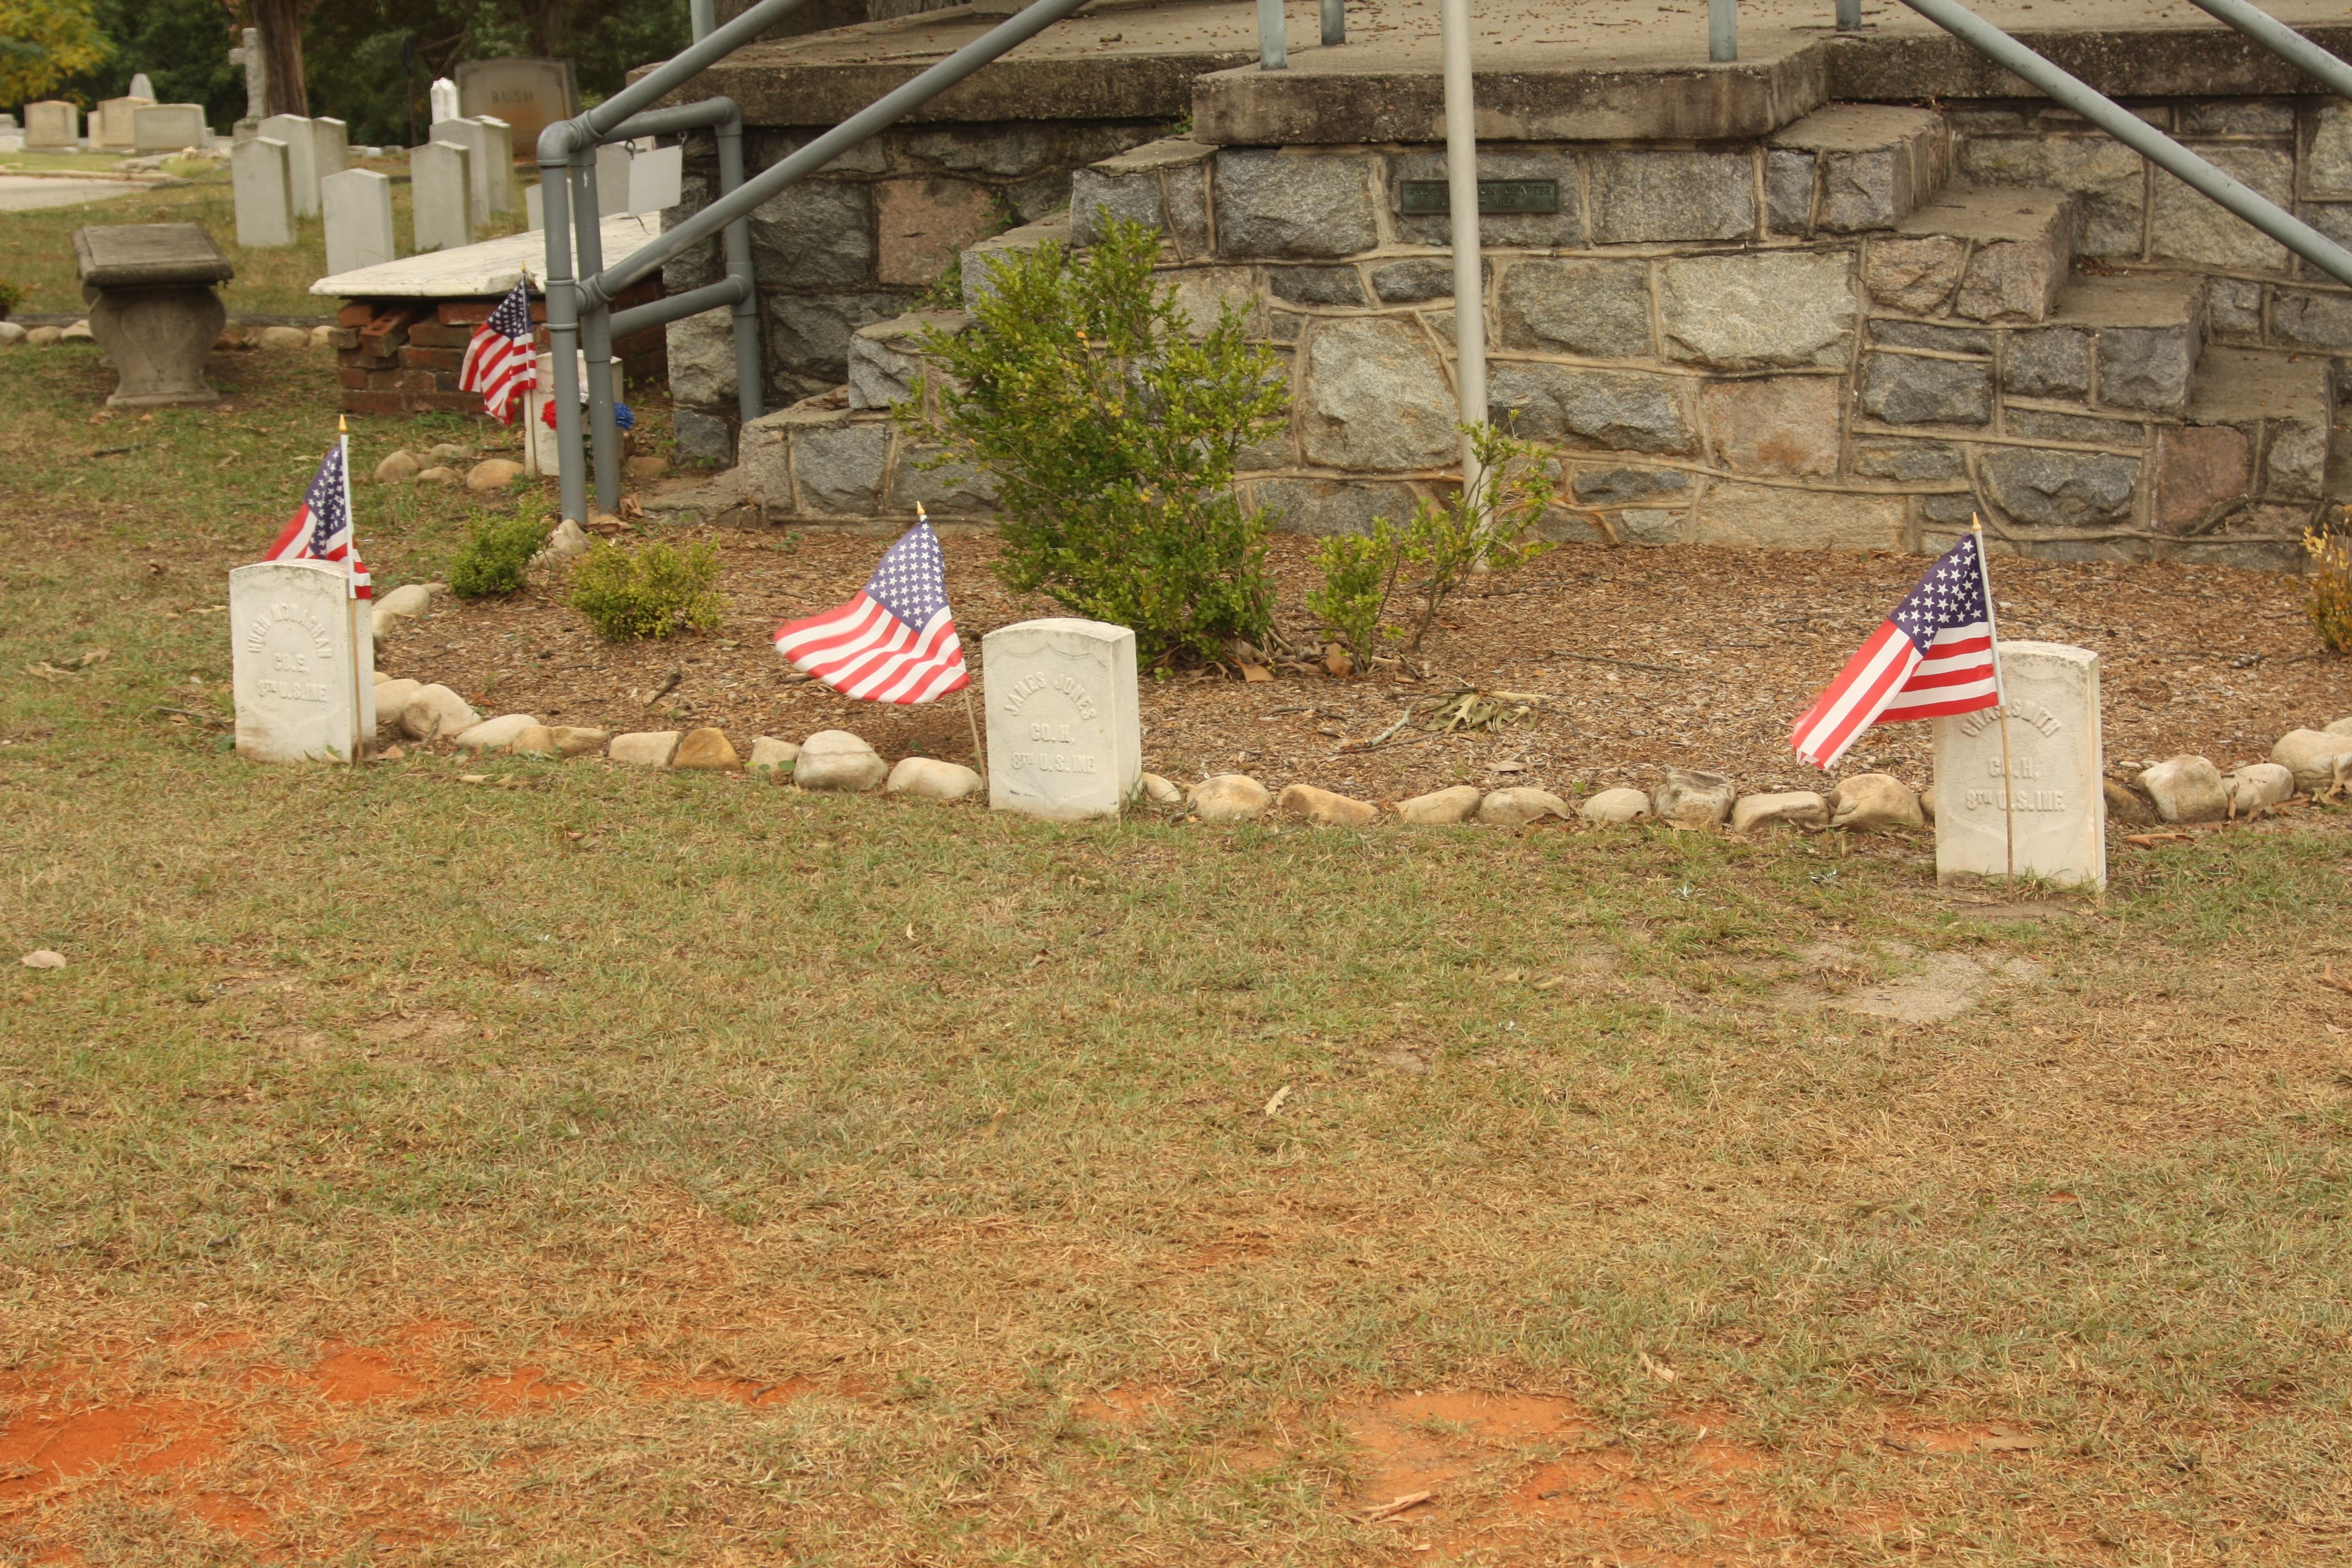 Union graves amid the Confederate dead- from photo 5